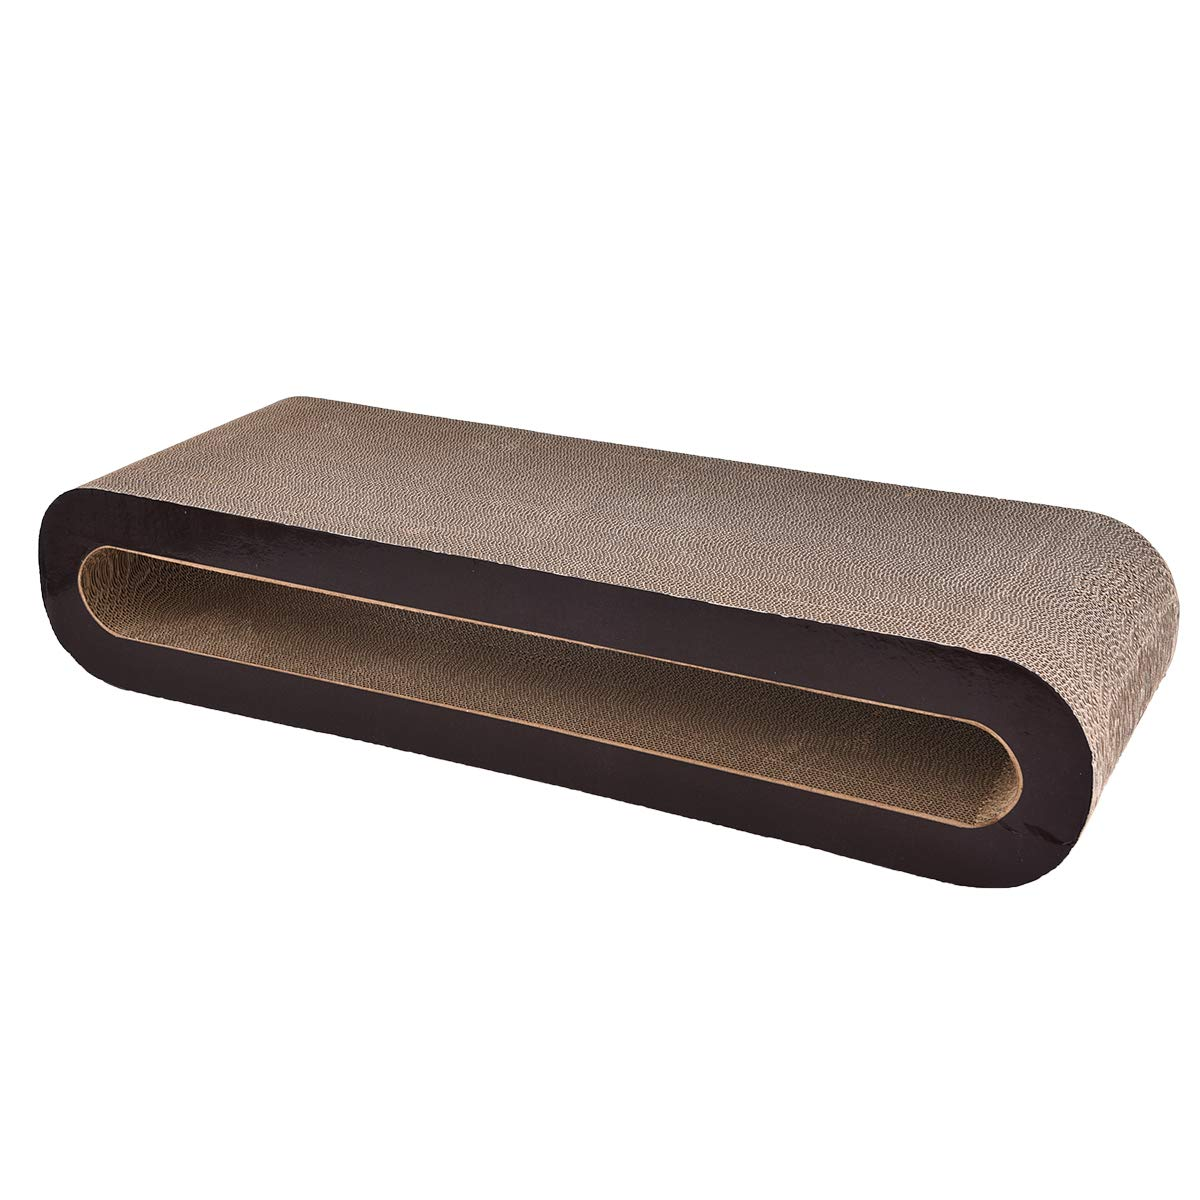 AmazonBasics Oval Cardboard Cat Scratcher Lounger - 34 x 7 x 12 Inches, Large by AmazonBasics